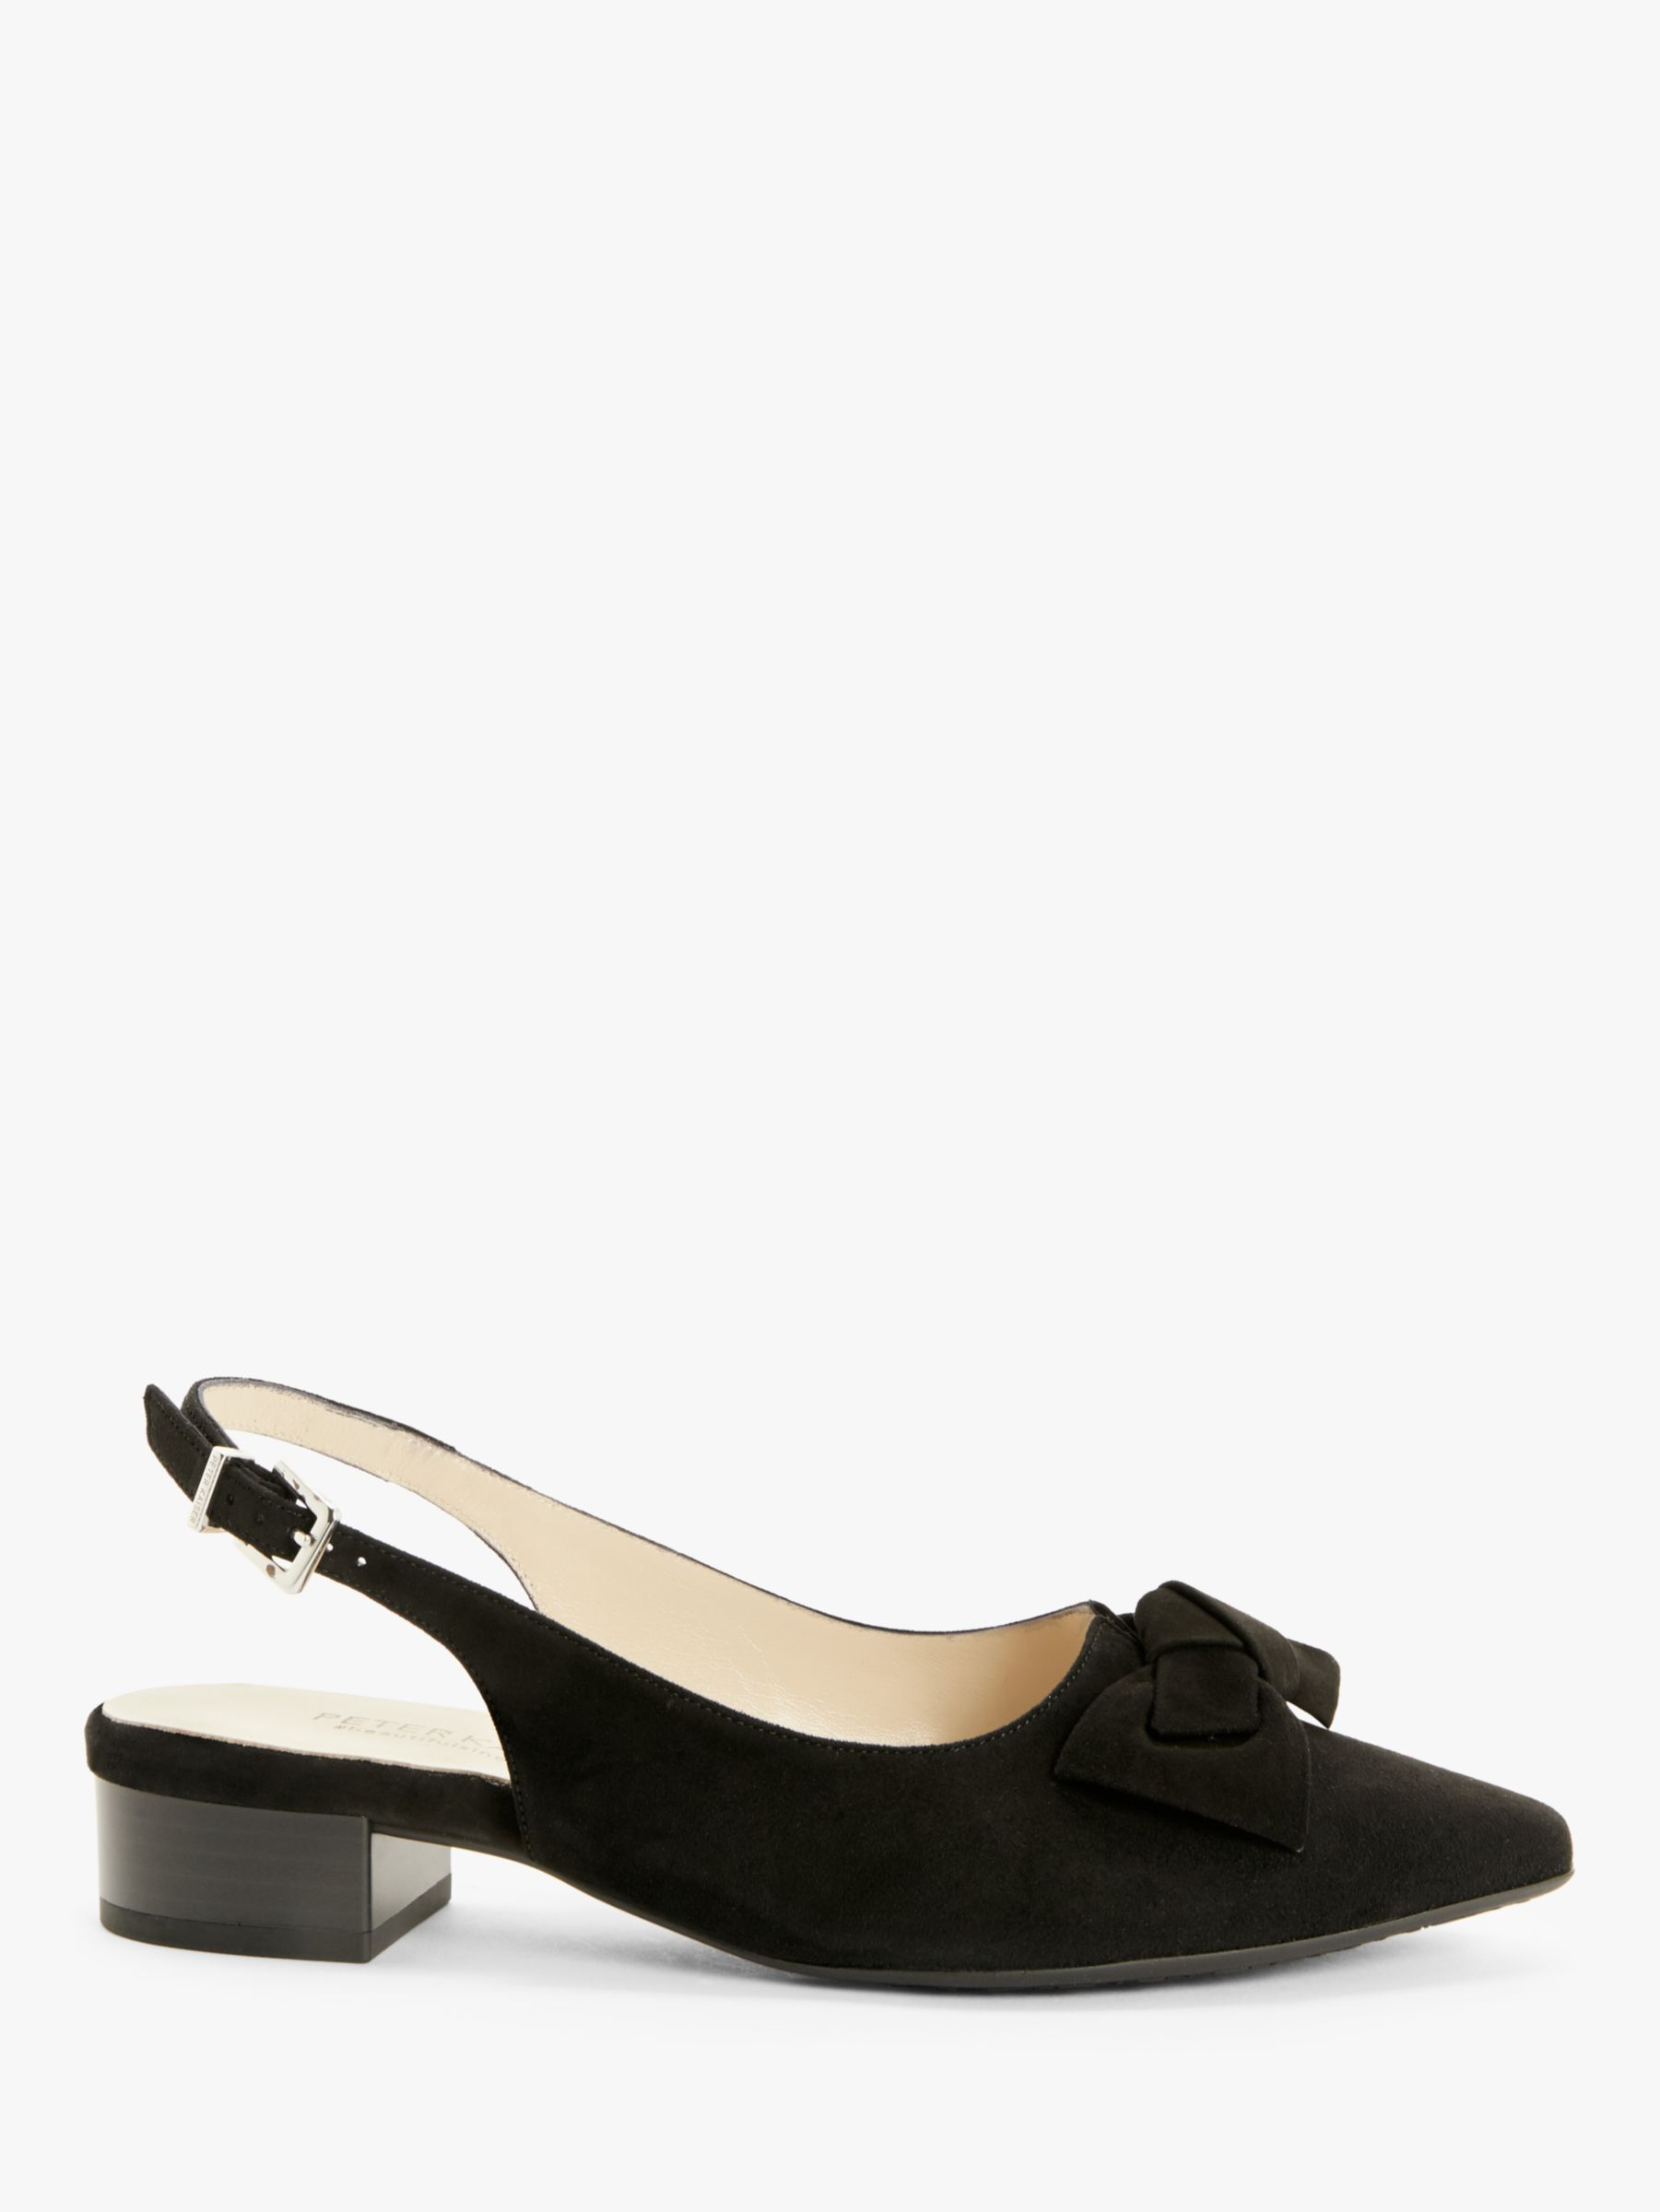 Peter Kaiser Peter Kaiser Adalia Suede Slingback Court Shoes, Black